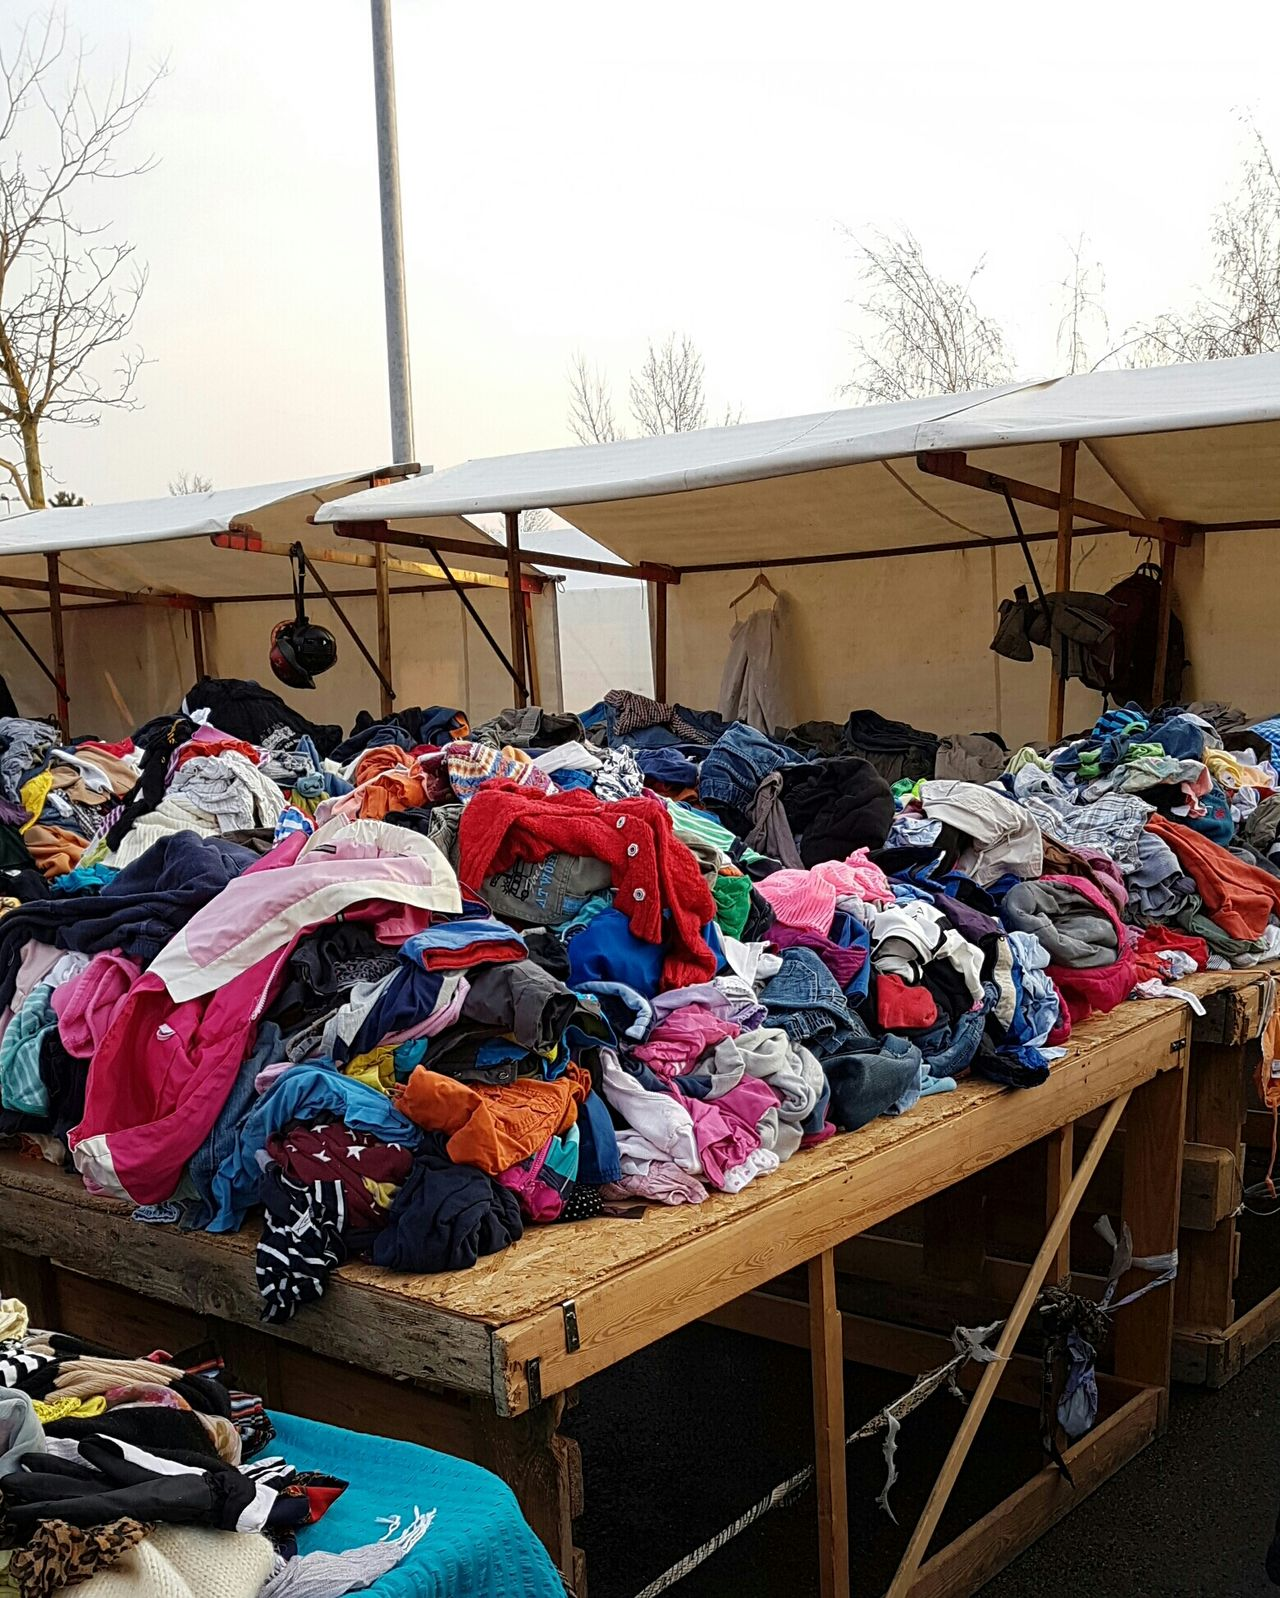 Retail  For Sale Second Hand Old Clothing Clothing Brocante Flea Market Flea Markets Fleamarket Background Cover Apparel Apparel Industry